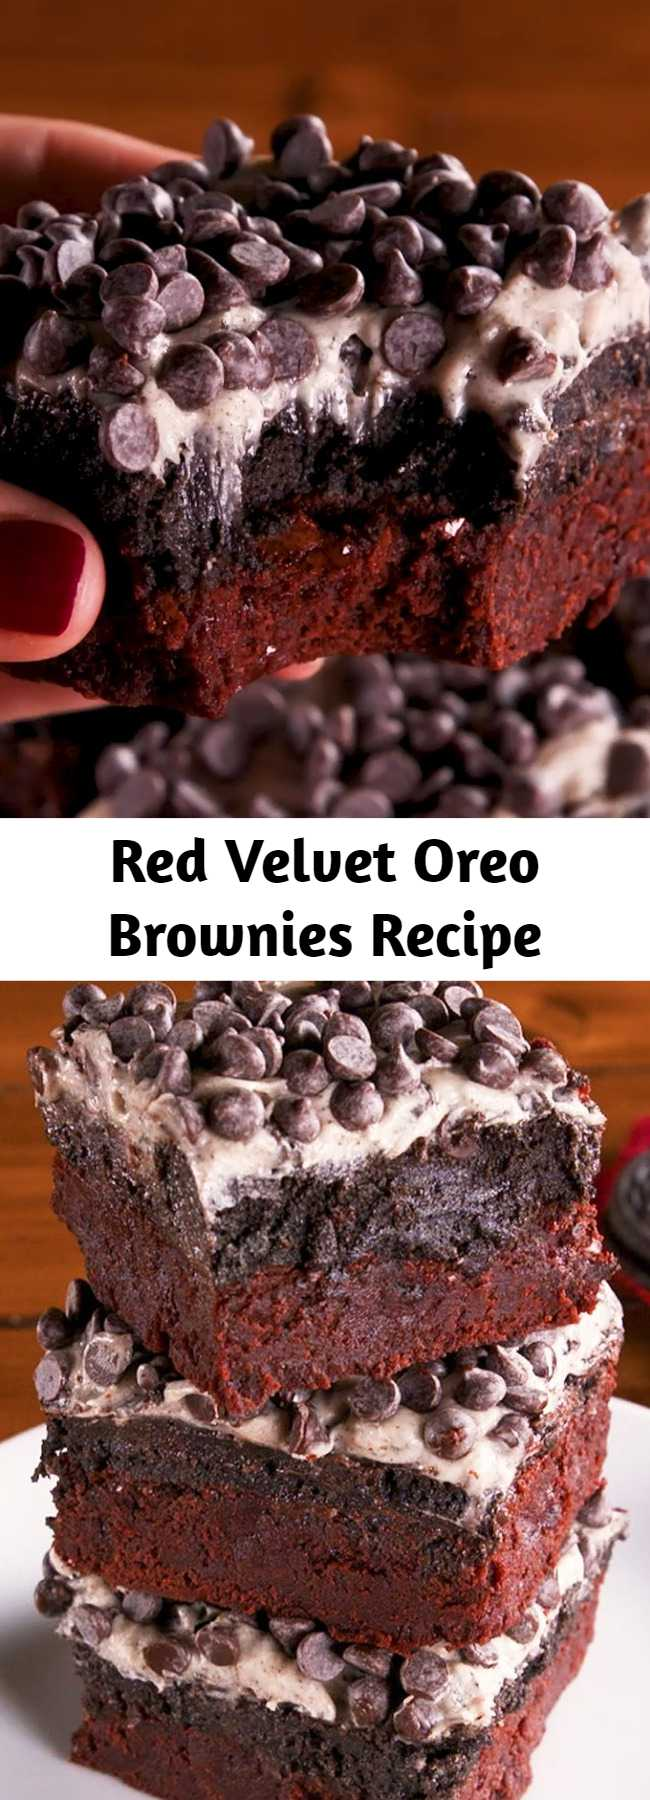 Red Velvet Oreo Brownies Recipe - Chewy red velvet brownies are topped with an Oreo truffle mixture, cream cheese frosting, and mini chocolate chips for layer after layer of decadence. It's a dream brownie that is now a reality. Oreo fans be prepared.